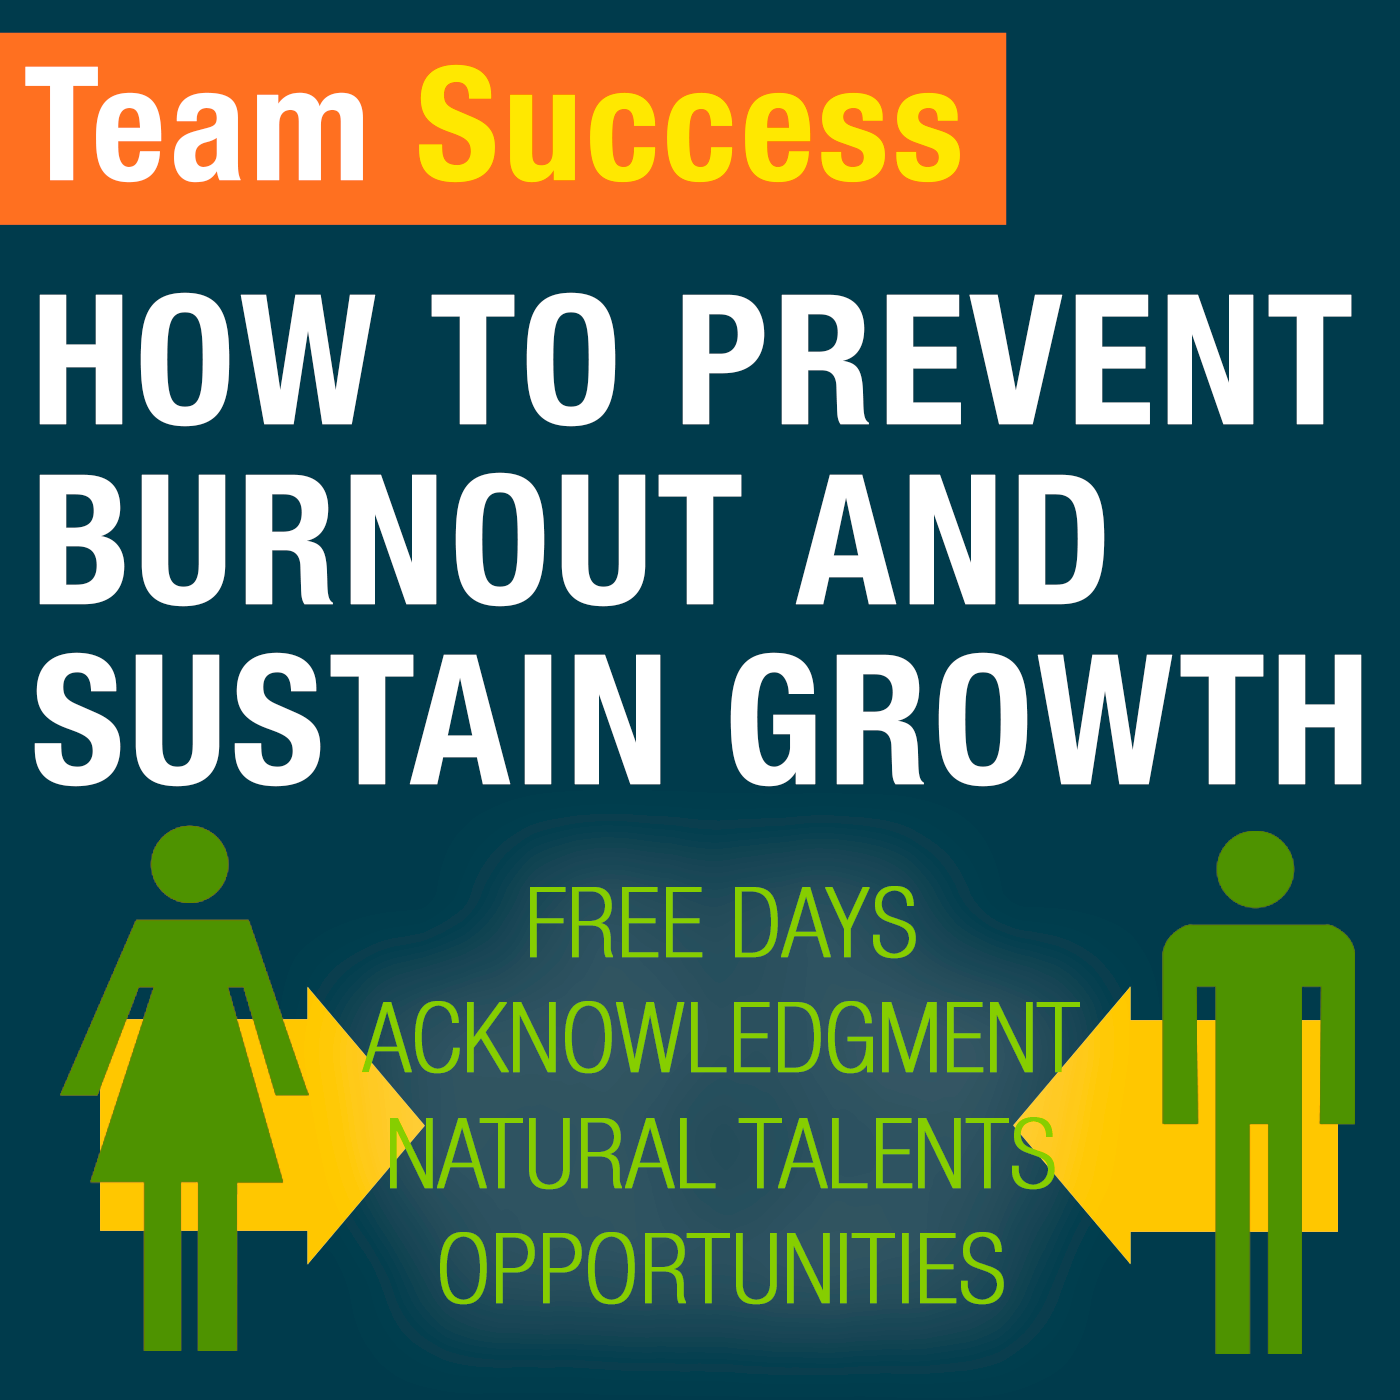 How To Prevent Burnout And Sustain Growth